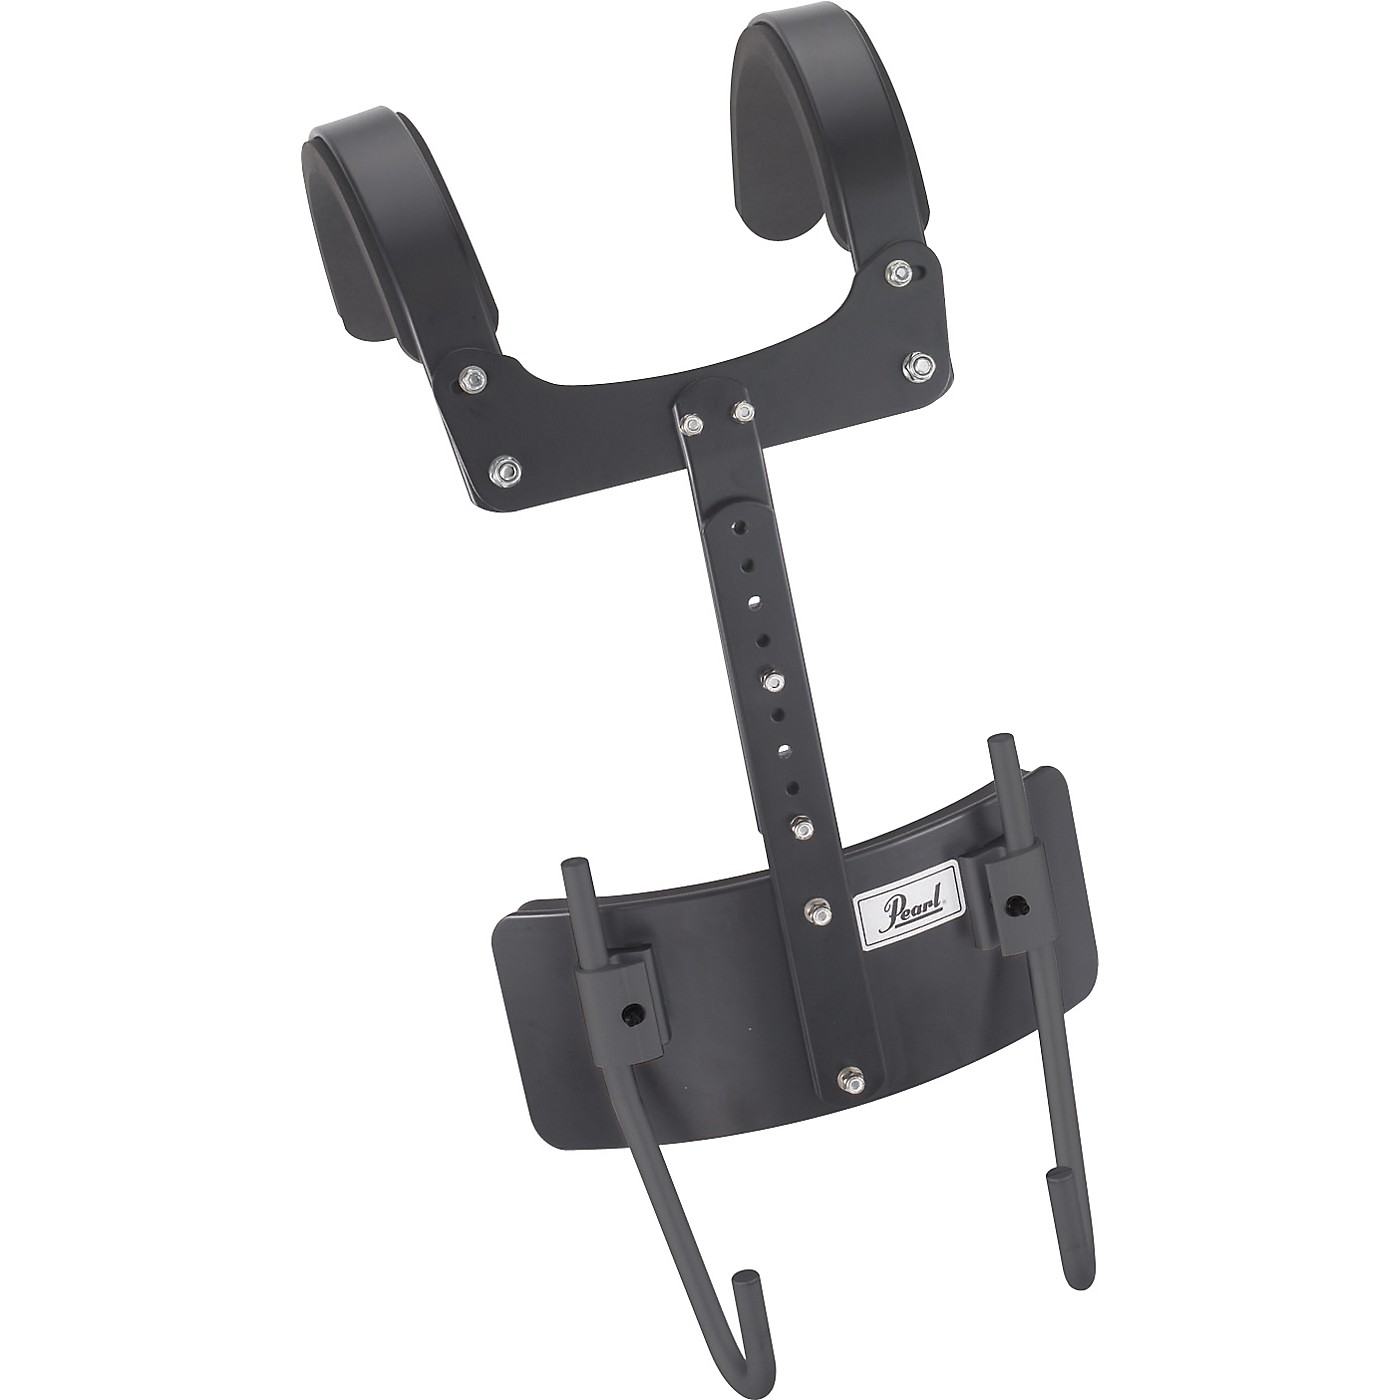 Pearl MX T-Frame Snare Drum Carrier thumbnail